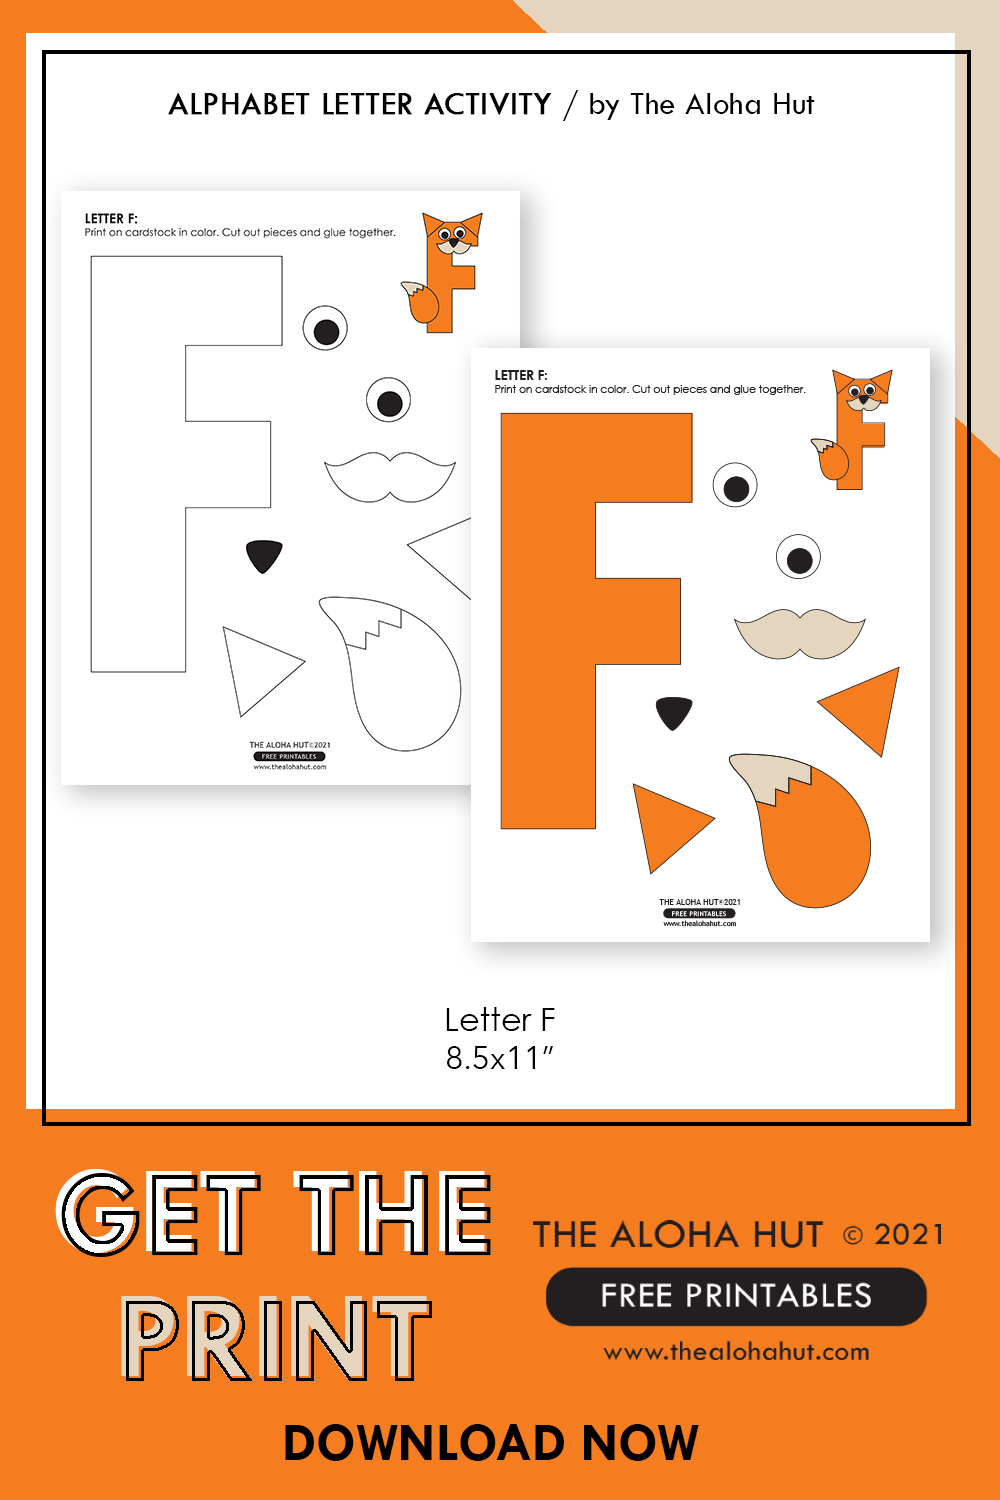 Alphabet Letter Crafts - Letter F - free printable 5 by the Aloha Hut